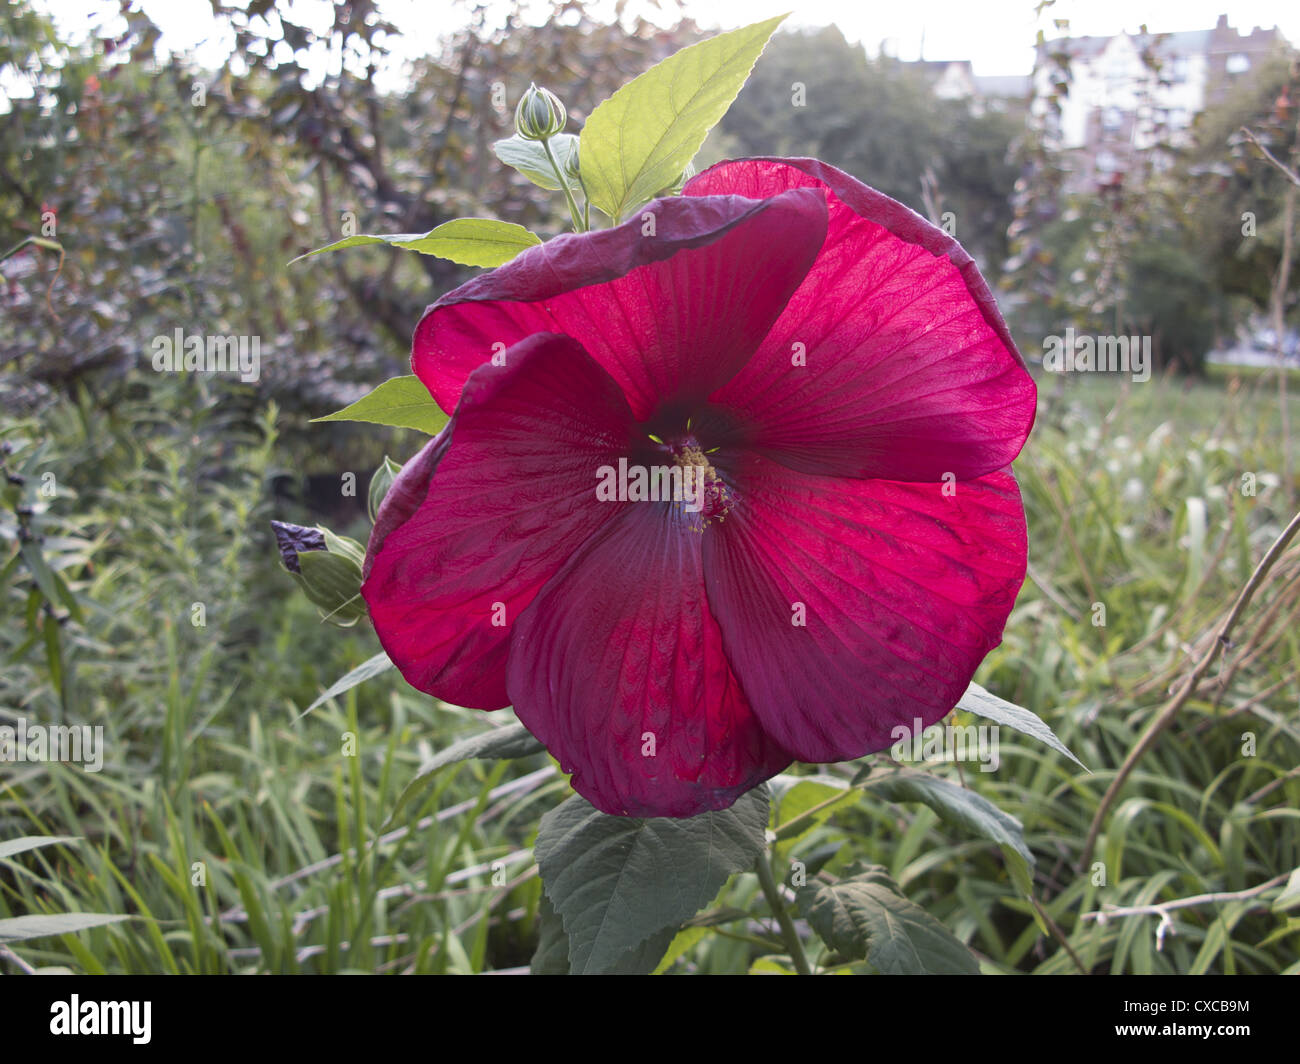 Red hibiscus flower park stock photos red hibiscus flower park large hibiscus flower park brooklyn ny stock image izmirmasajfo Gallery